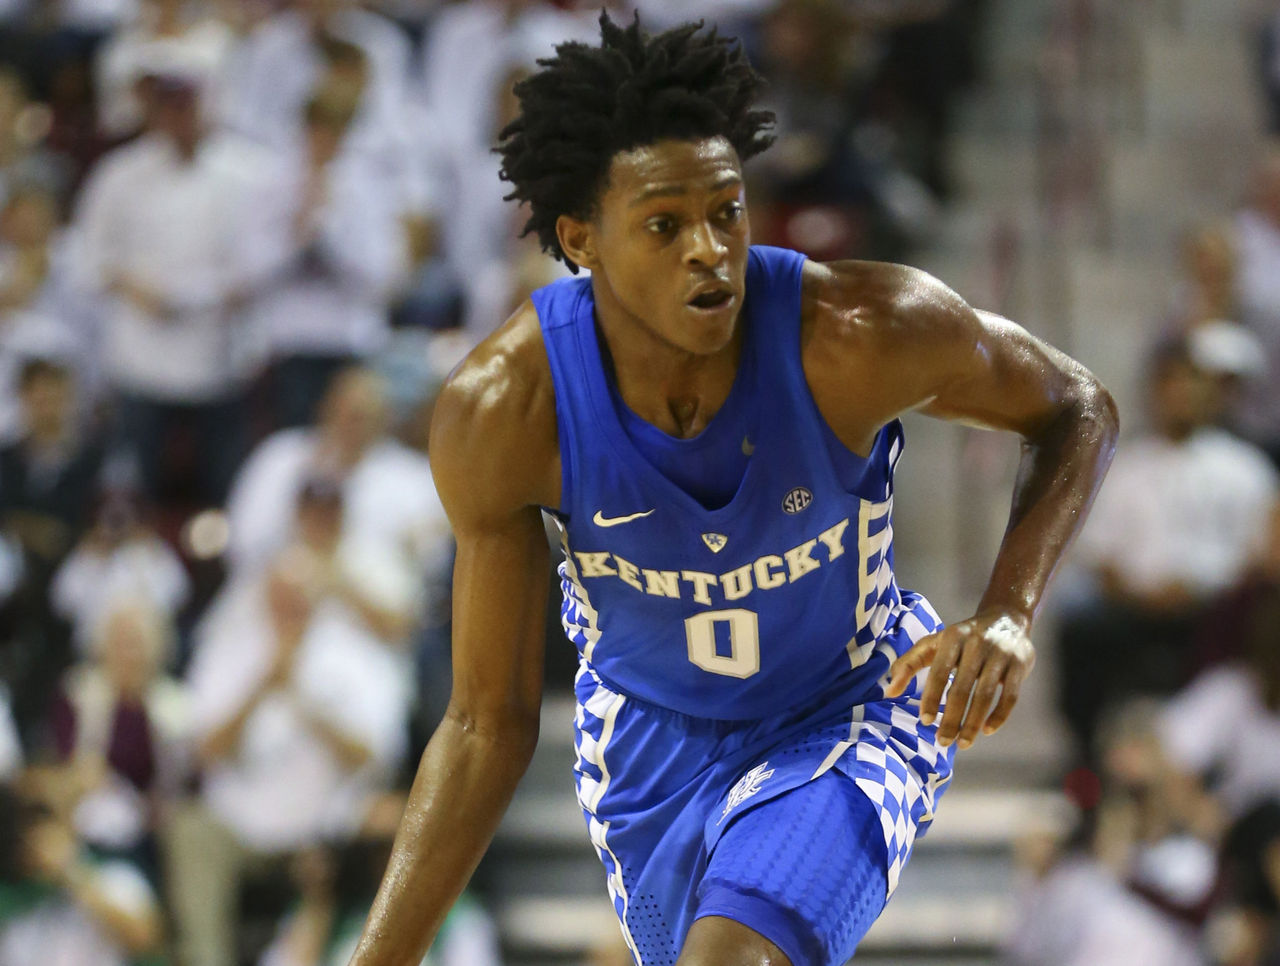 Cropped 2017 01 18t012831z 1606754341 nocid rtrmadp 3 ncaa basketball kentucky at mississippi state